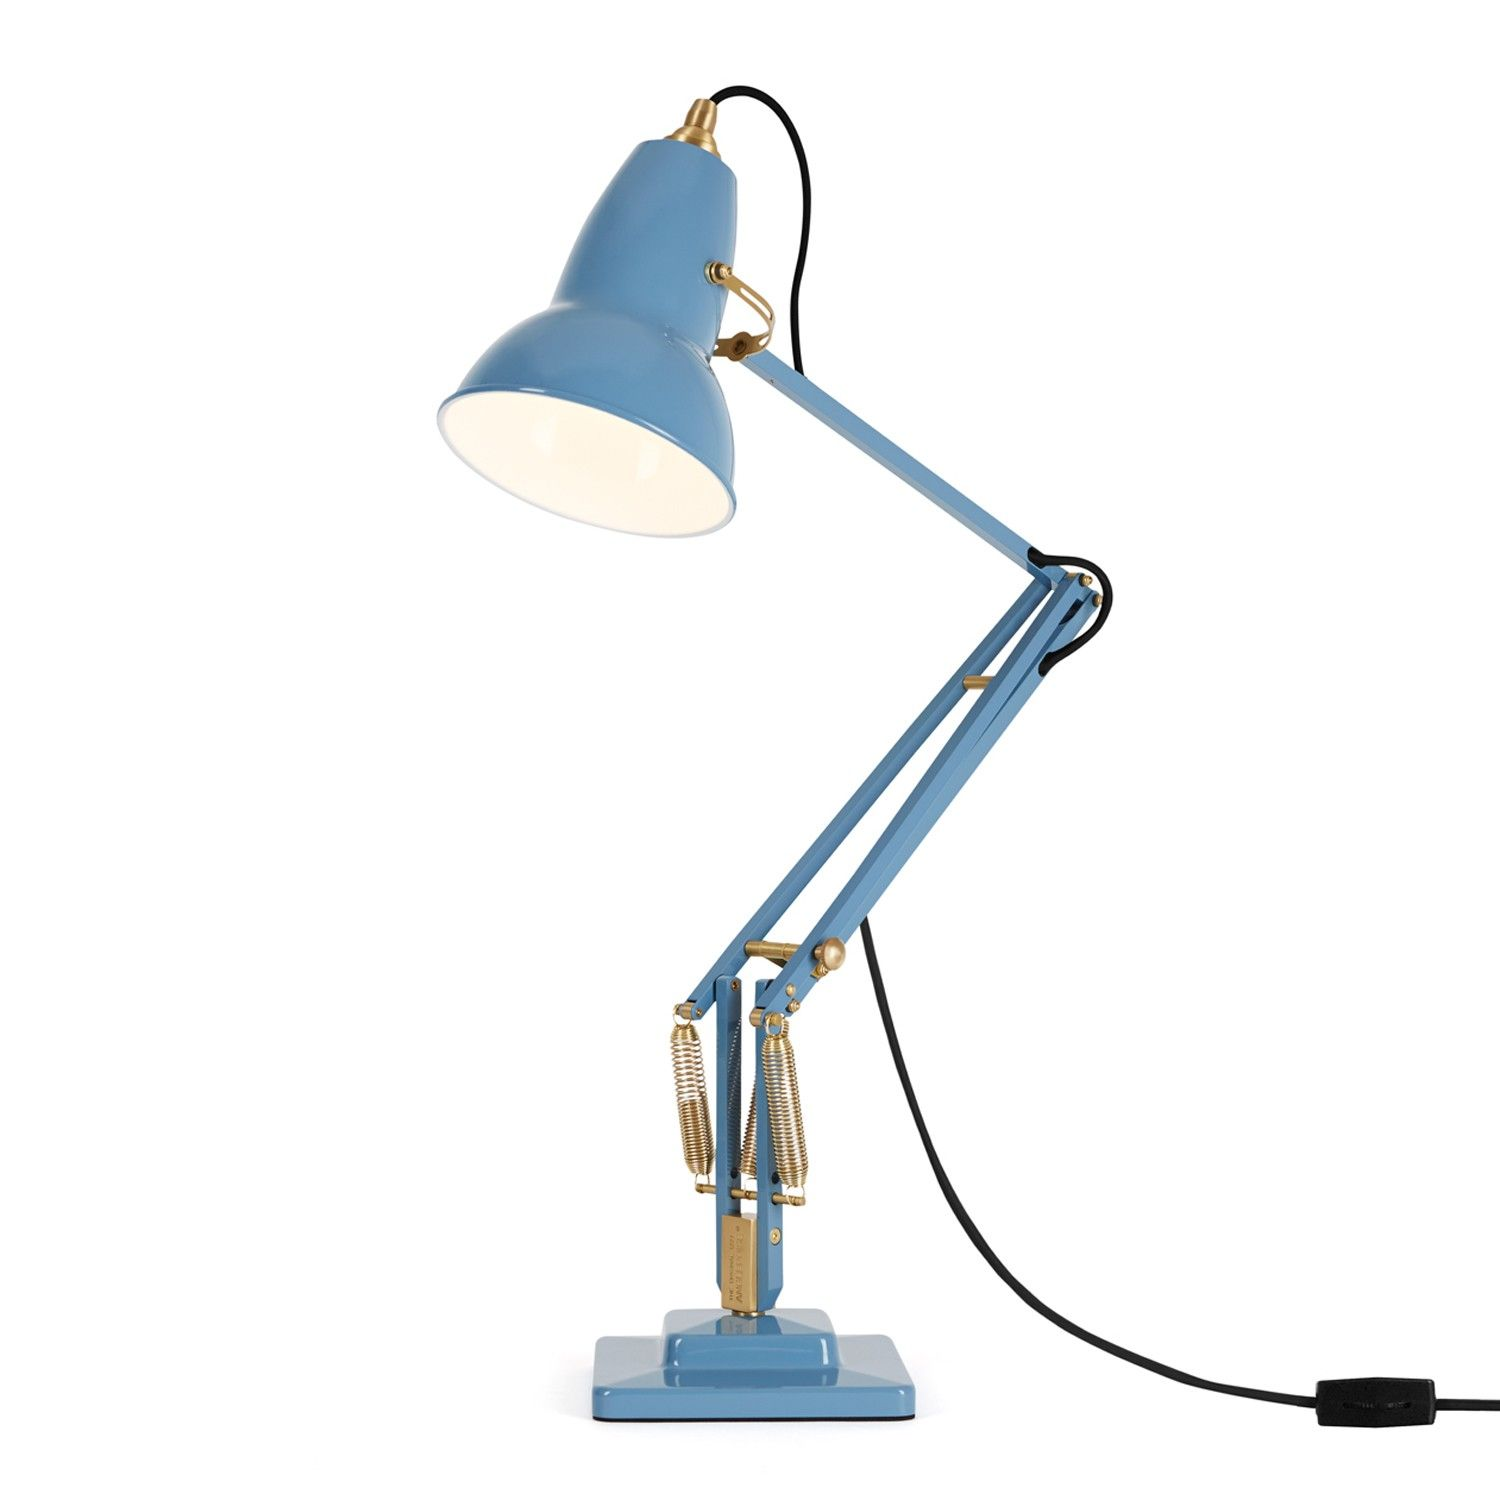 A beautiful update to an iconic piece, the Original 1227™ Brass Desk Lamp boasts rich, heritage inspired colors and authentic brass details.